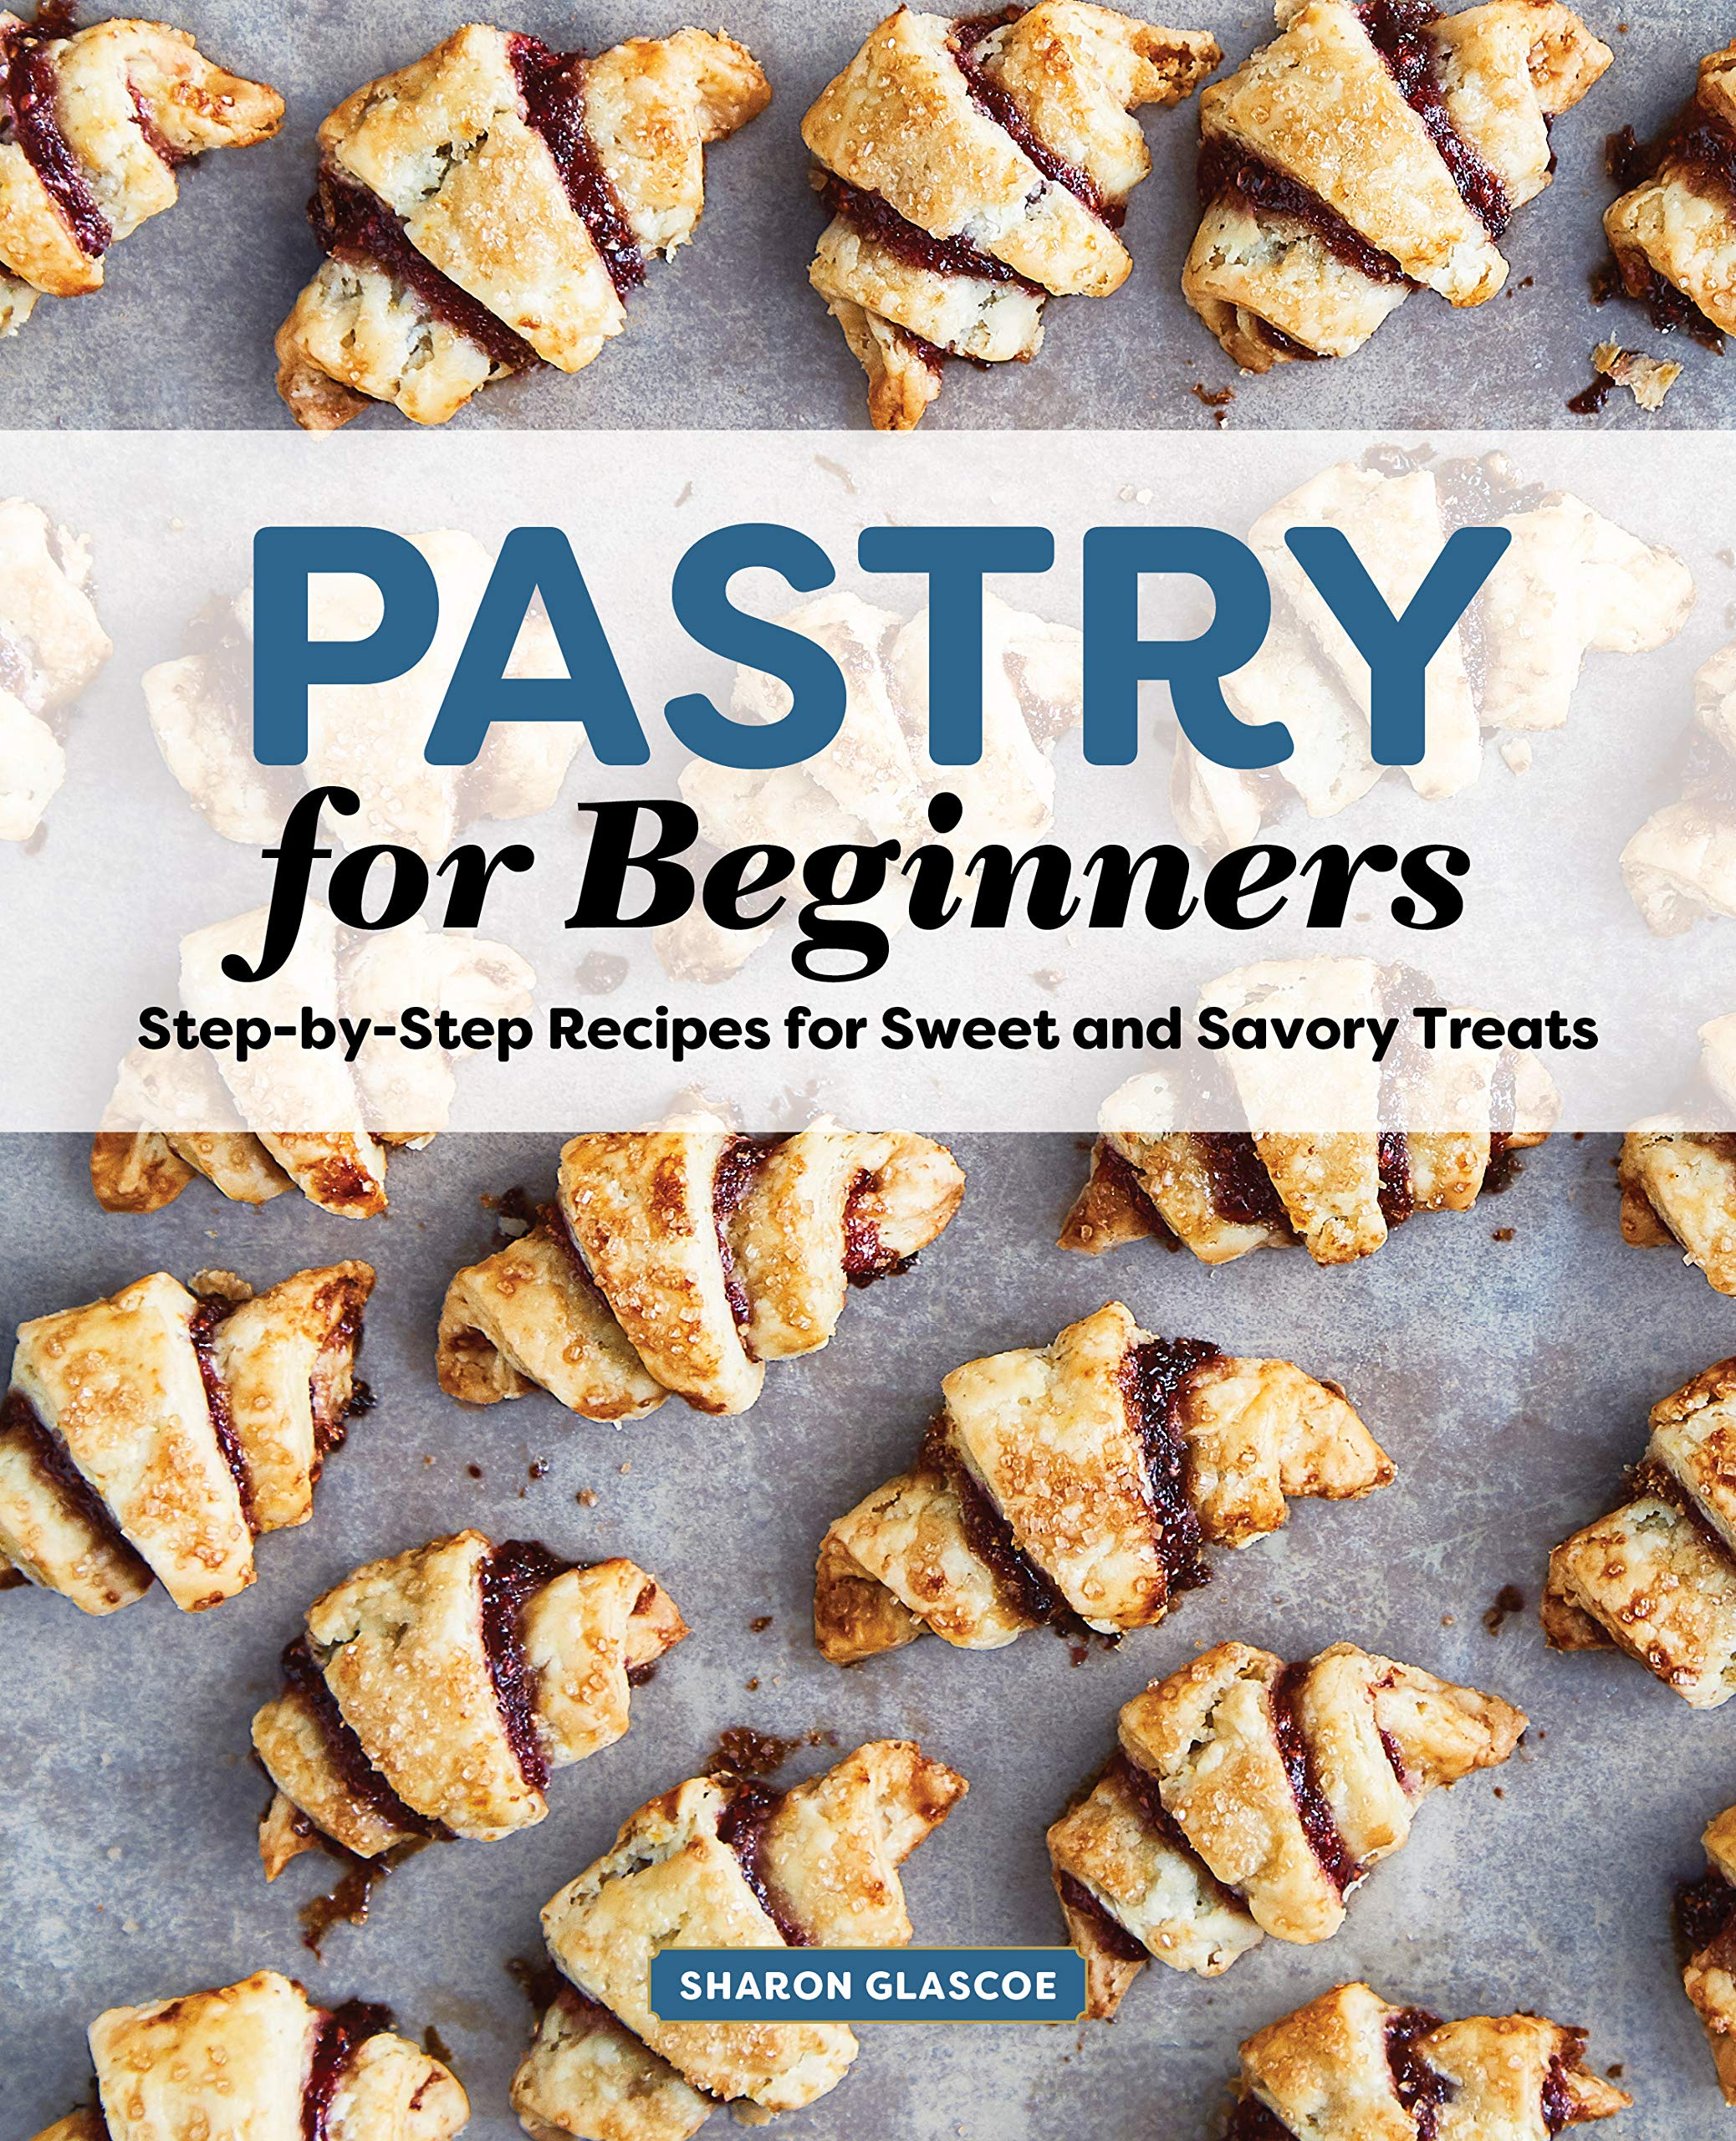 Image OfPastry For Beginners Cookbook: Step-by-Step Recipes For Sweet And Savory Treats